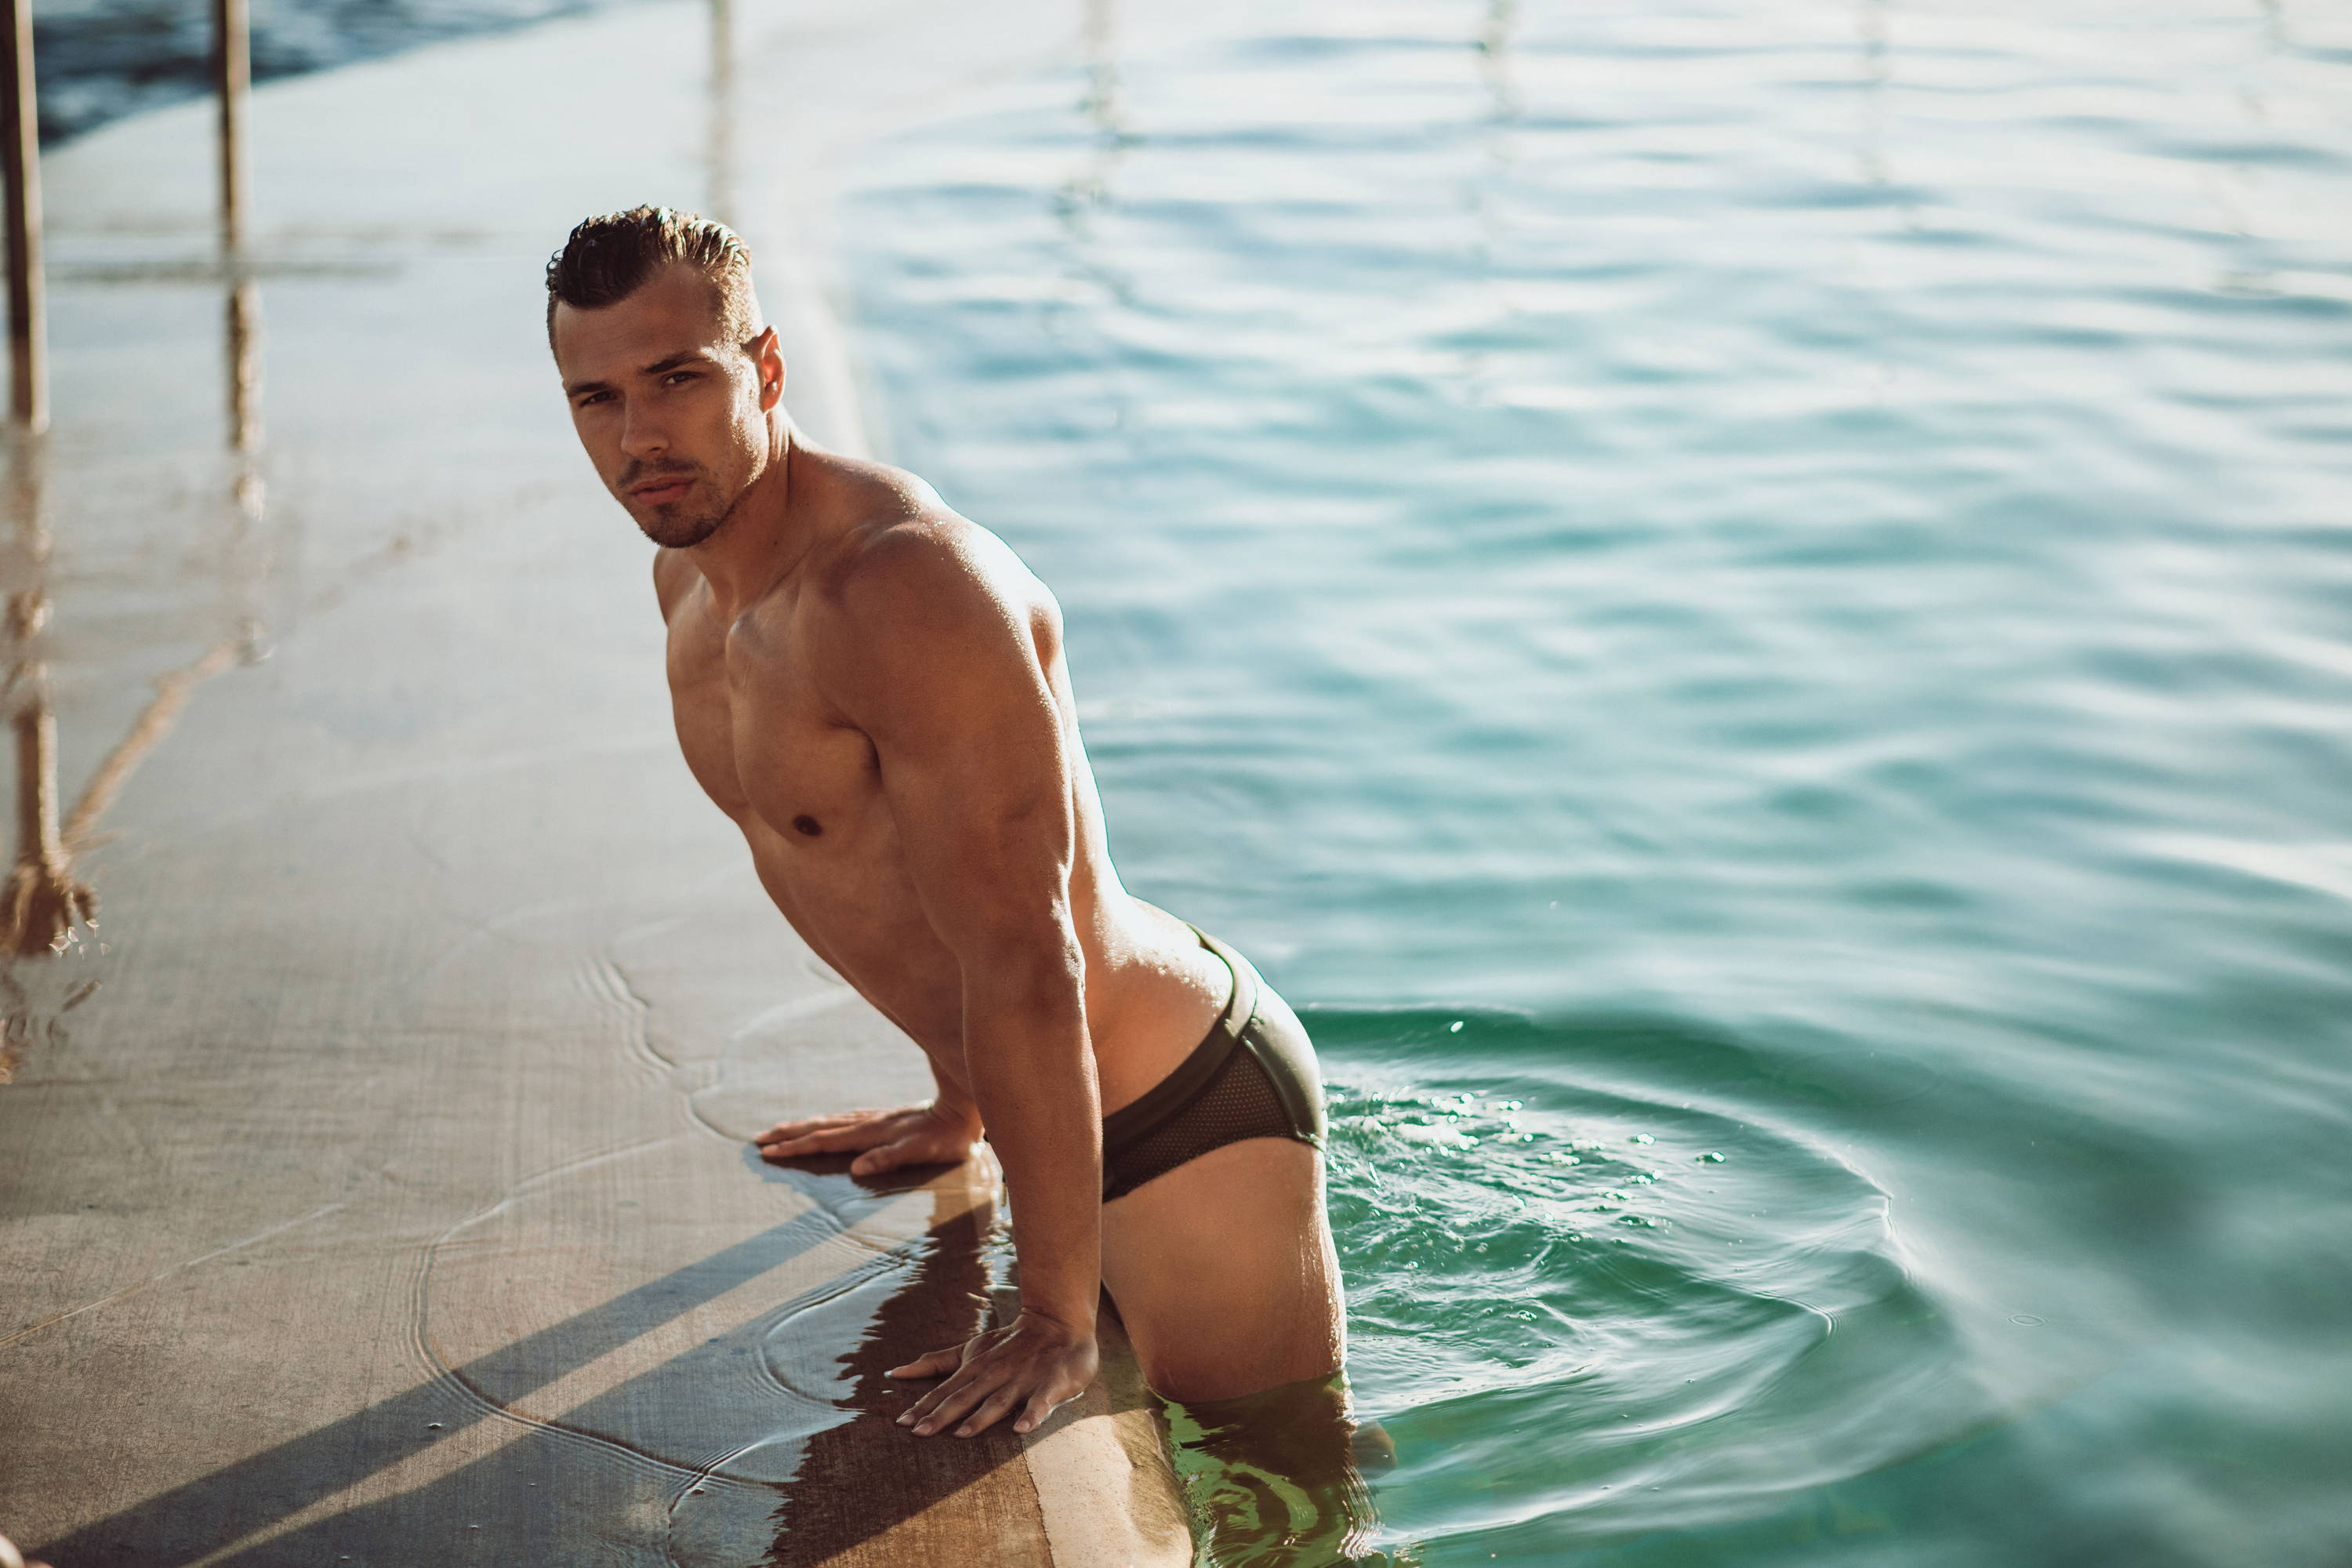 It's About The Man - Mark by Dion - Teamm8 | Man in swimwear, hunk in swimwear, shirtless male in swimwear